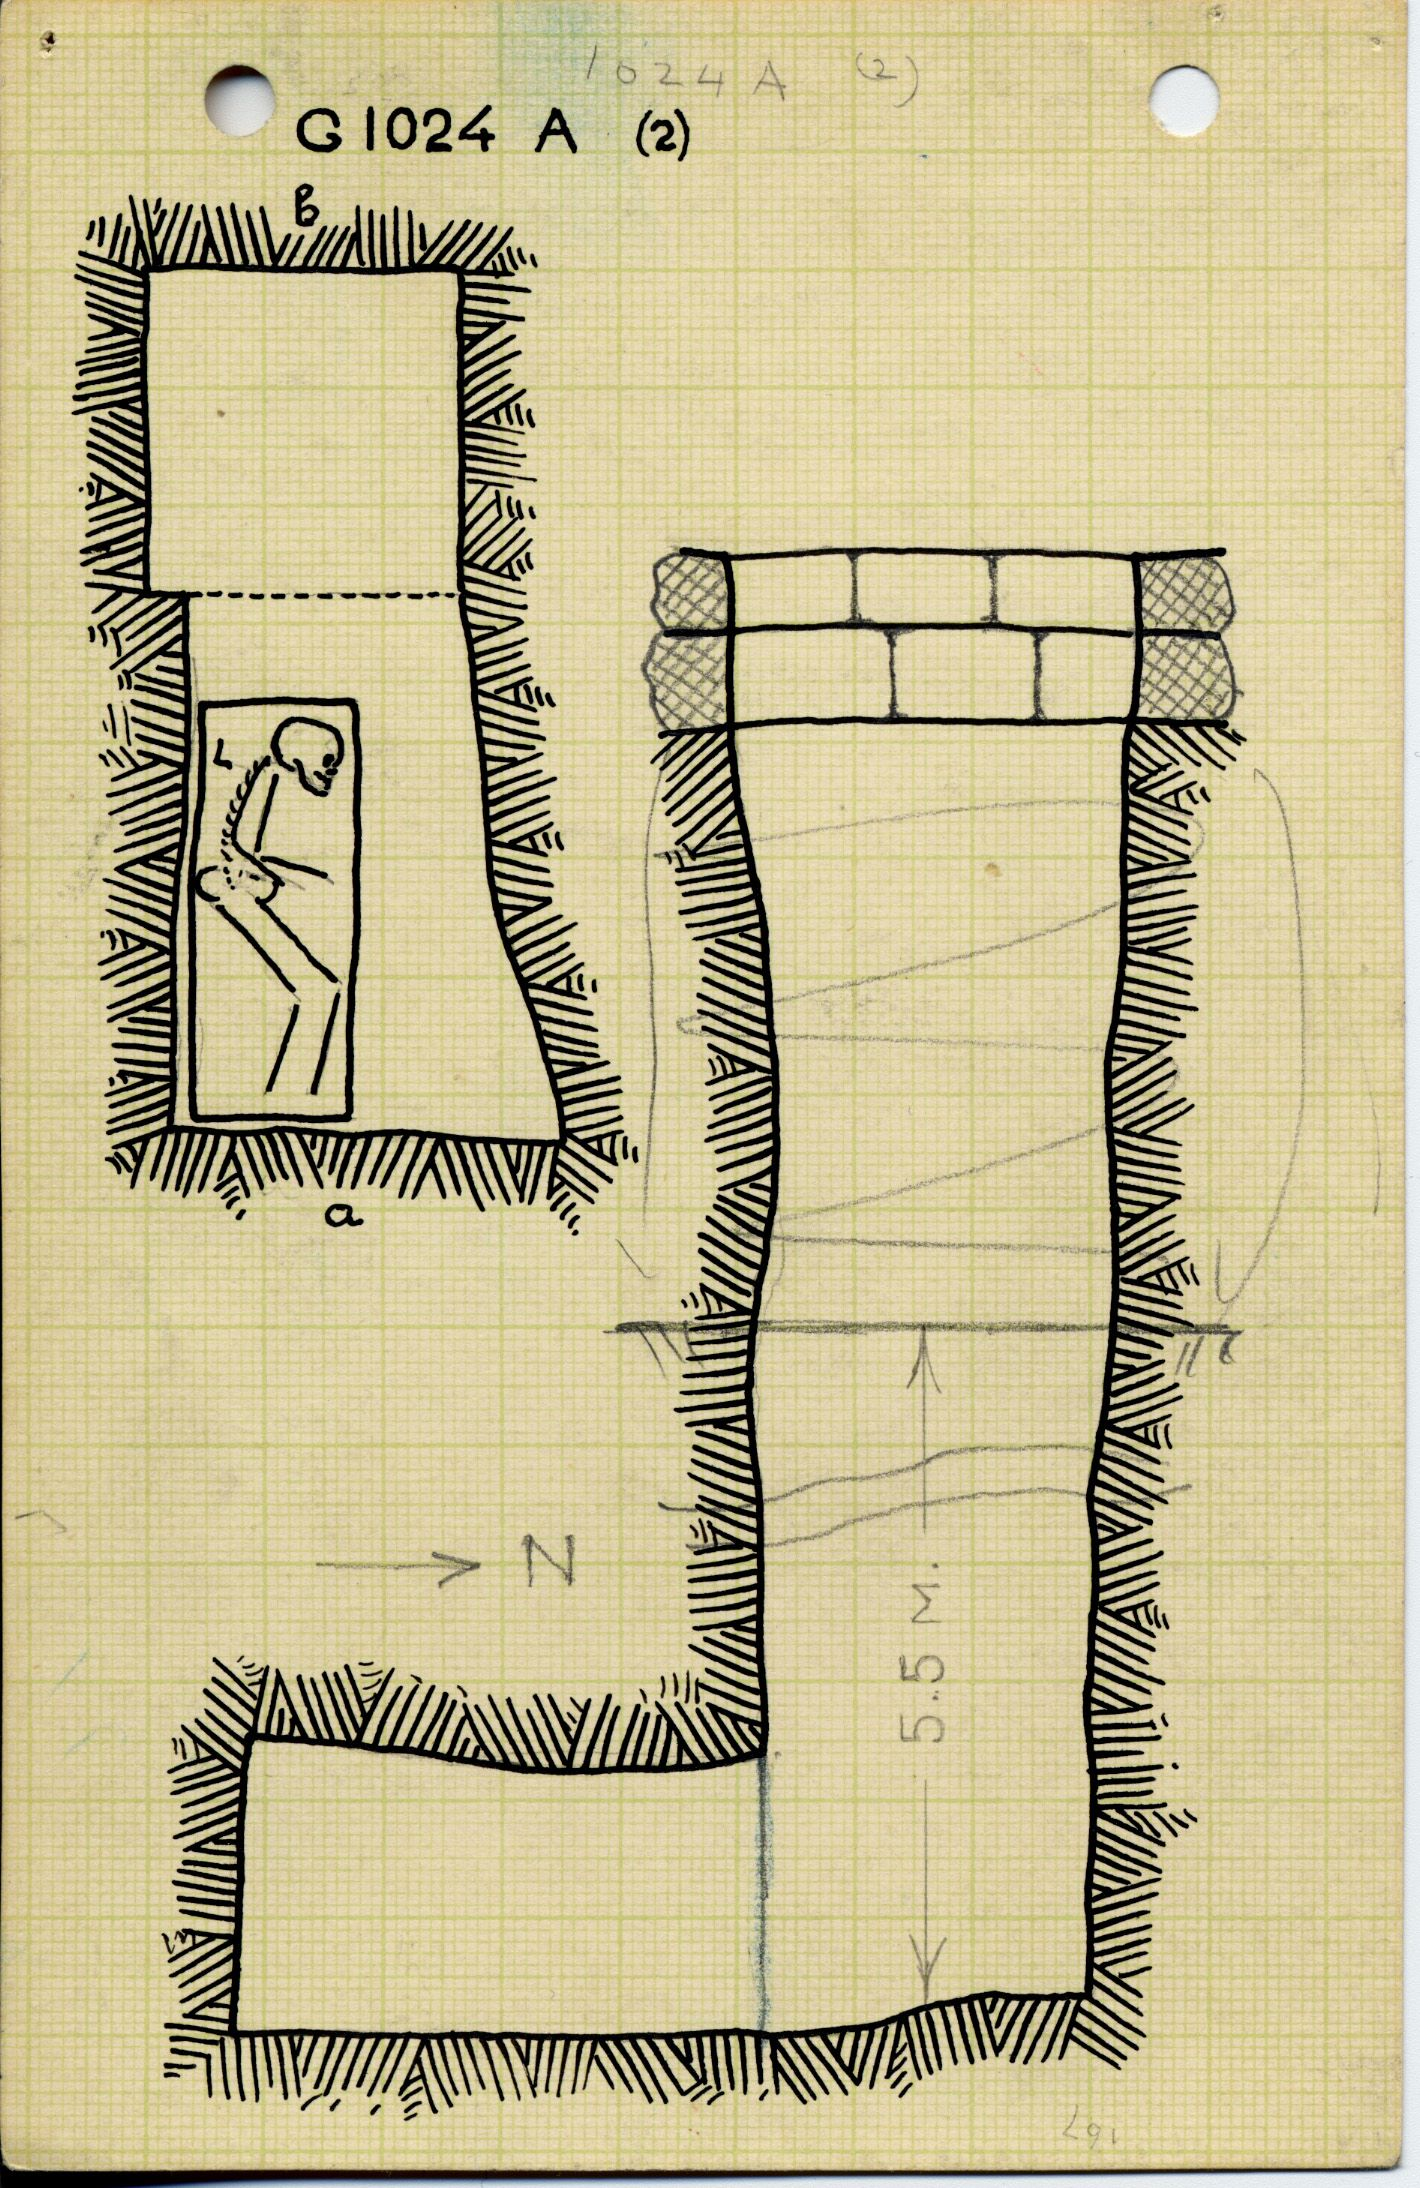 Maps and plans: G 1024, Shaft A